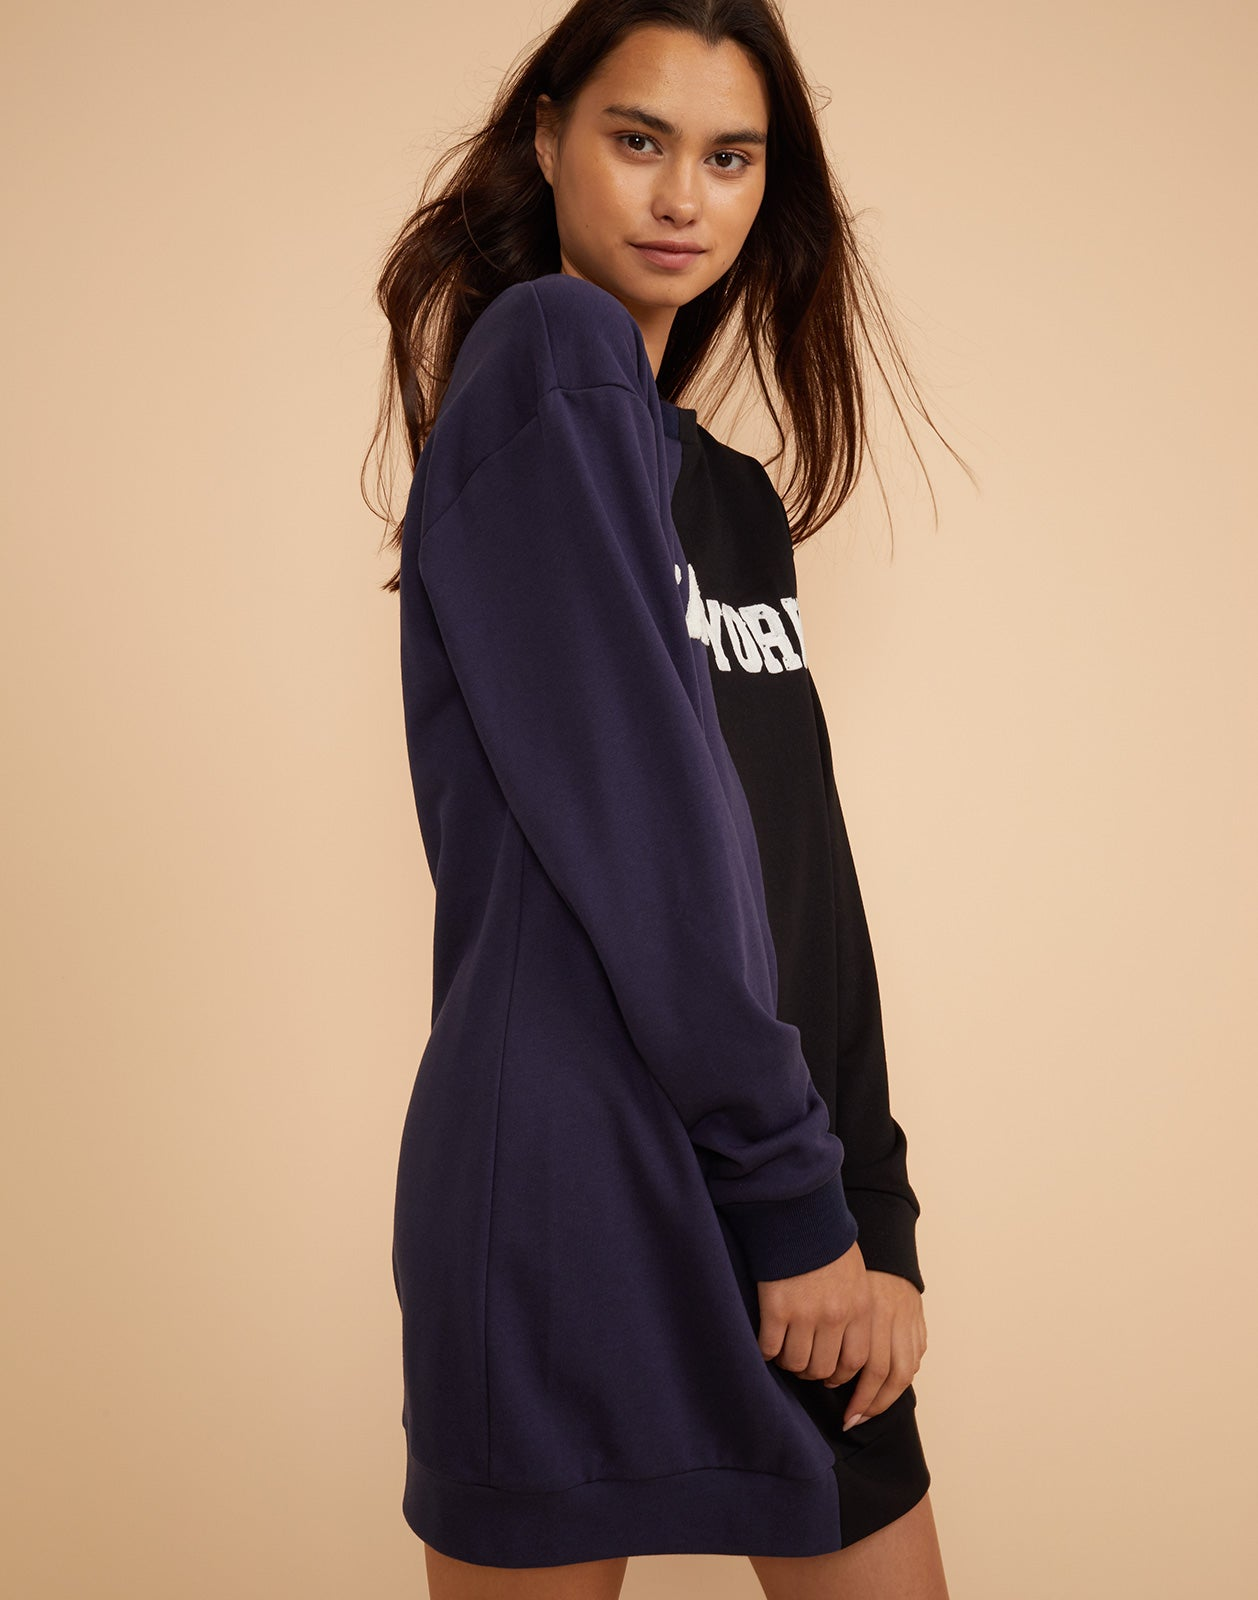 Close side view of the CaliYork sweatshirt dress in half navy half black.